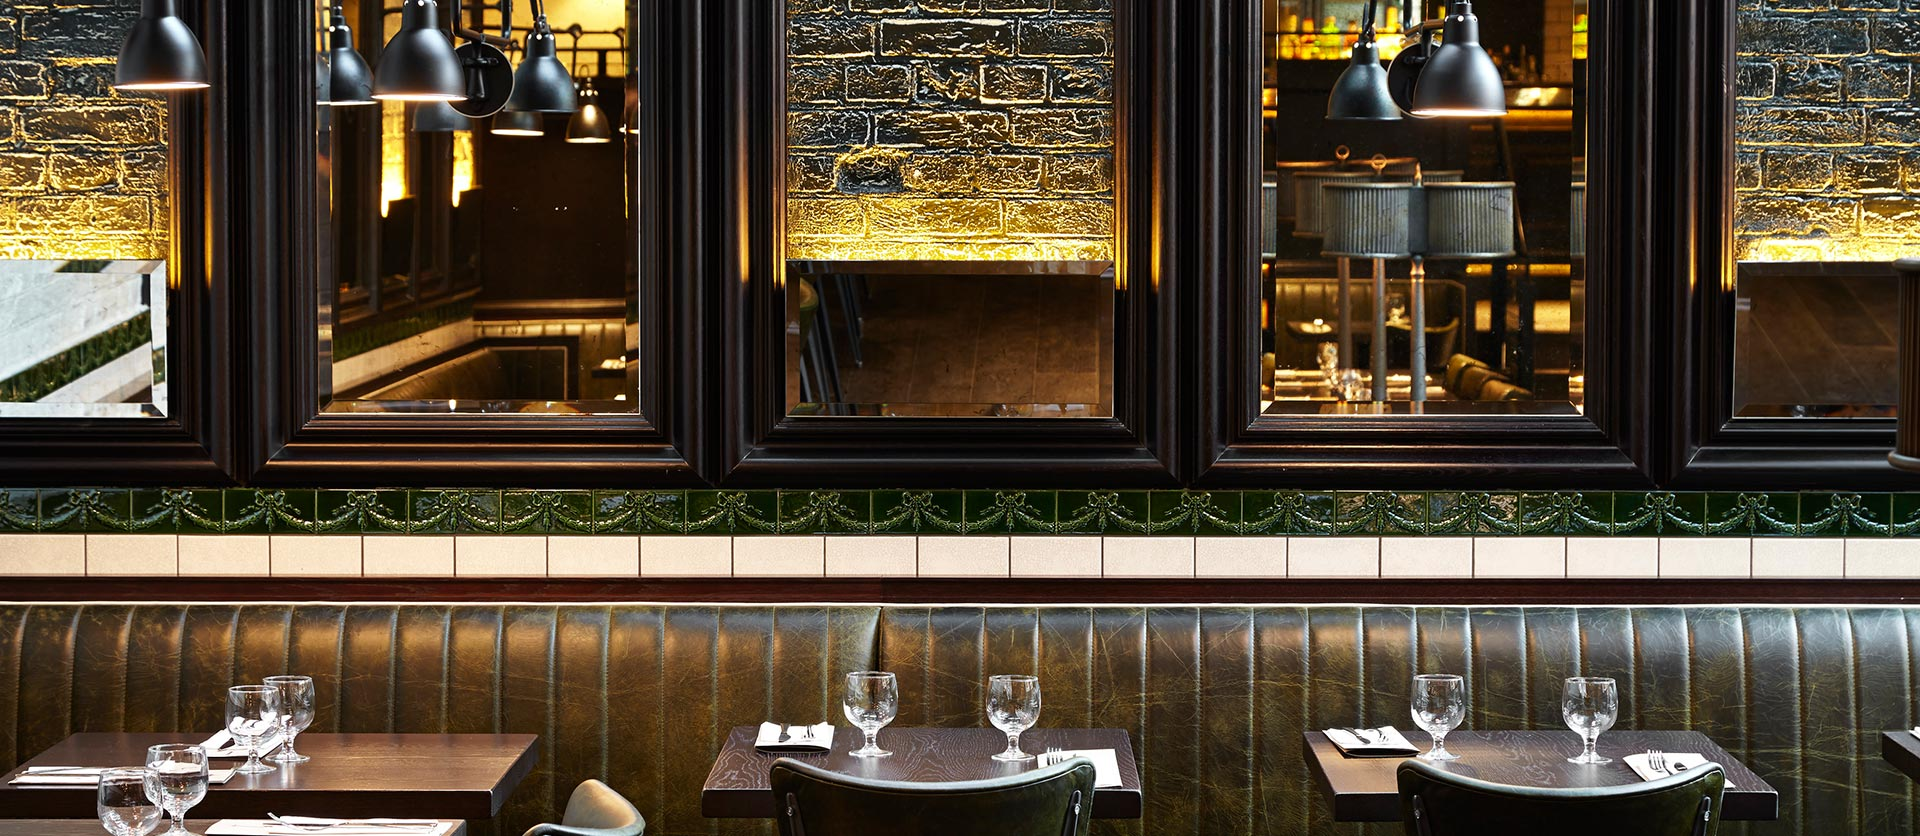 TREDWELLS | MARCUS WAREING | INTERIOR2 | WE LOVE FOOD IT'S ALL WE EAT